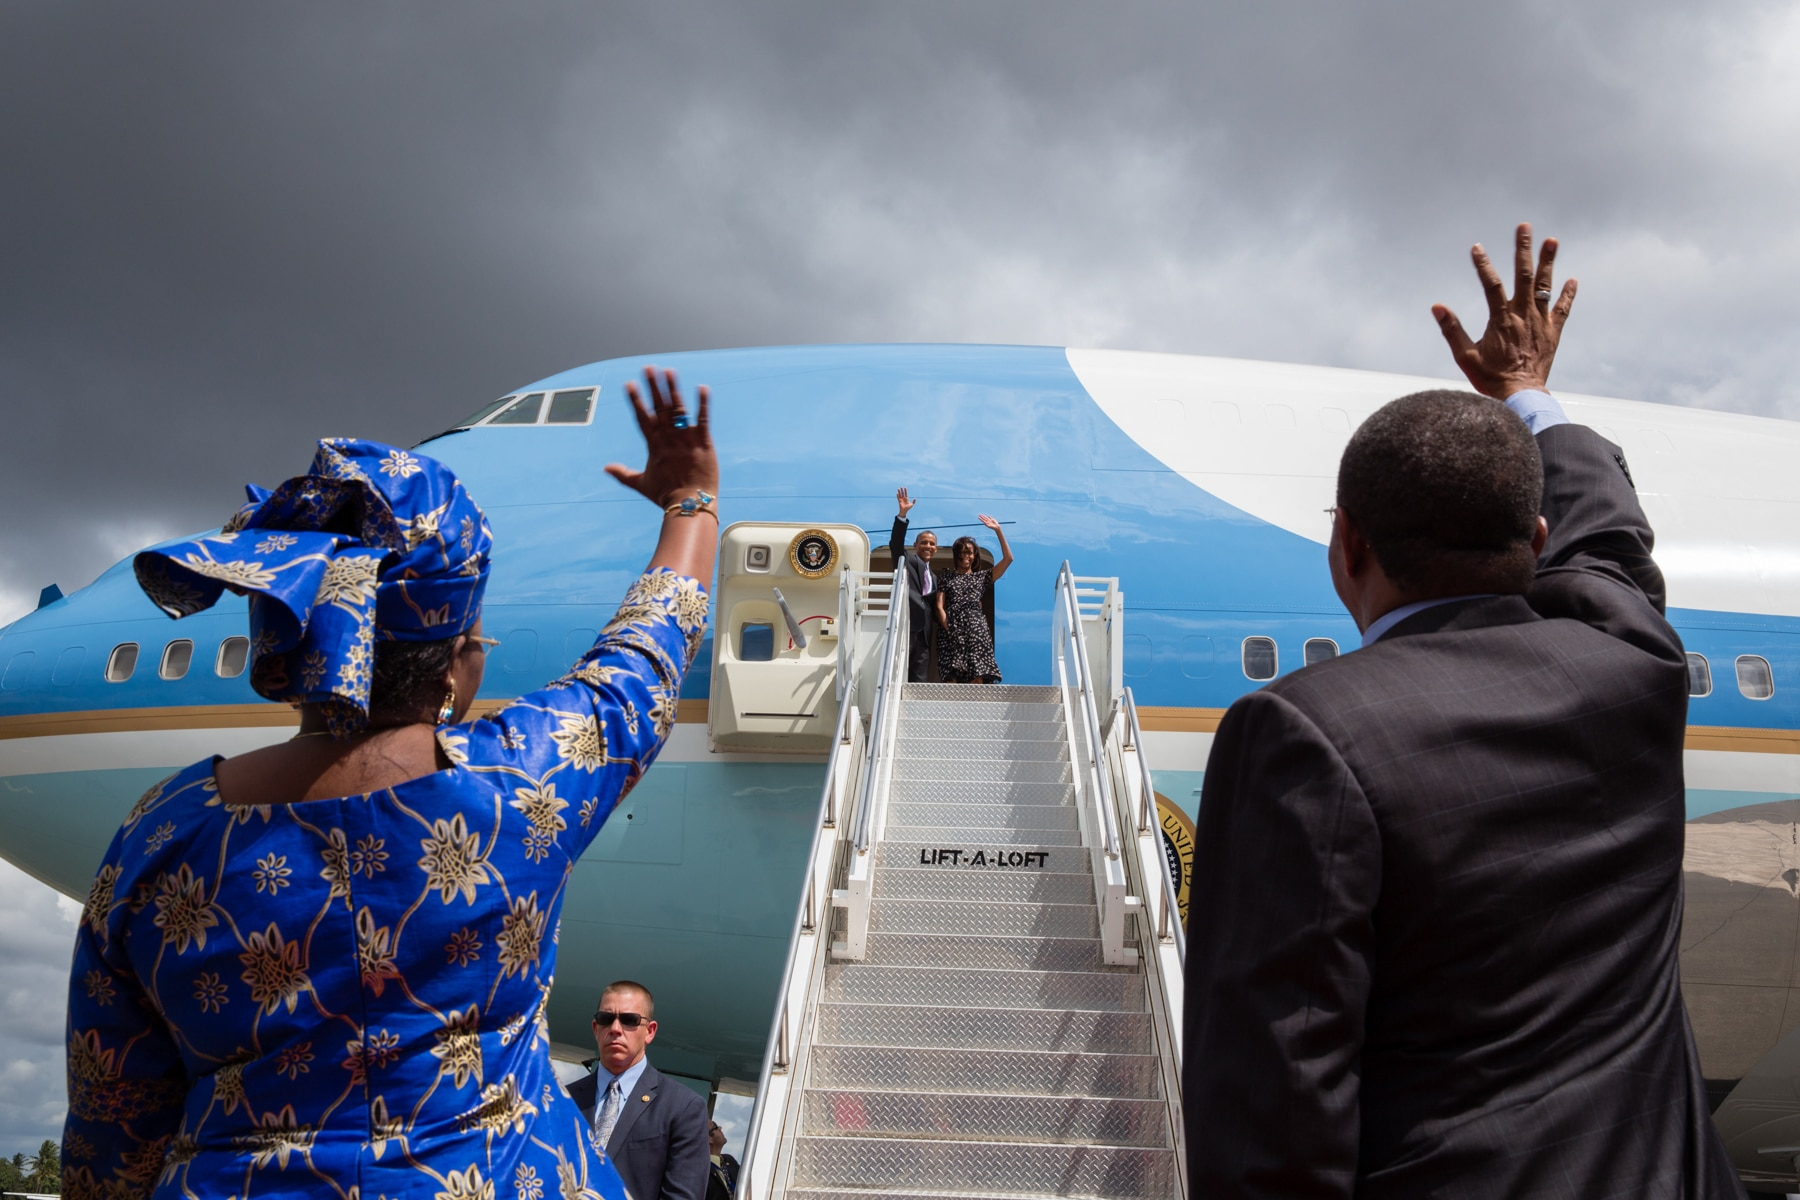 President Obama and Michelle Obama waving to Jakaya Kikwete and Salma Kikwete from aircraft door (White House/Pete Souza)